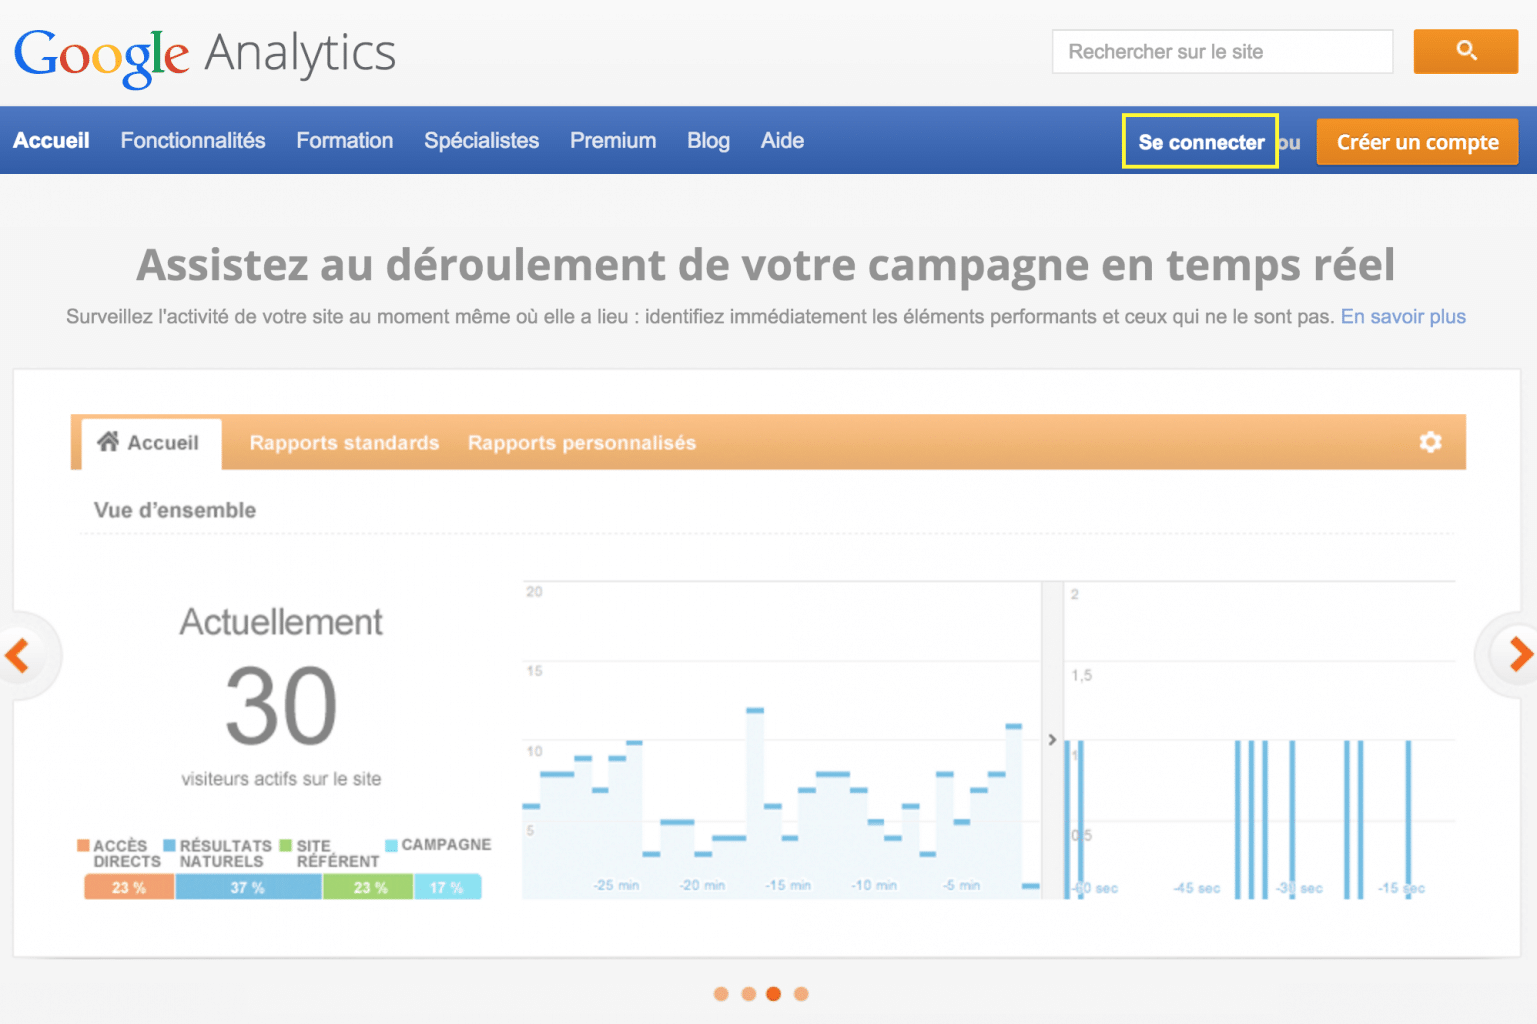 connexion-google-analytics-1537x1024